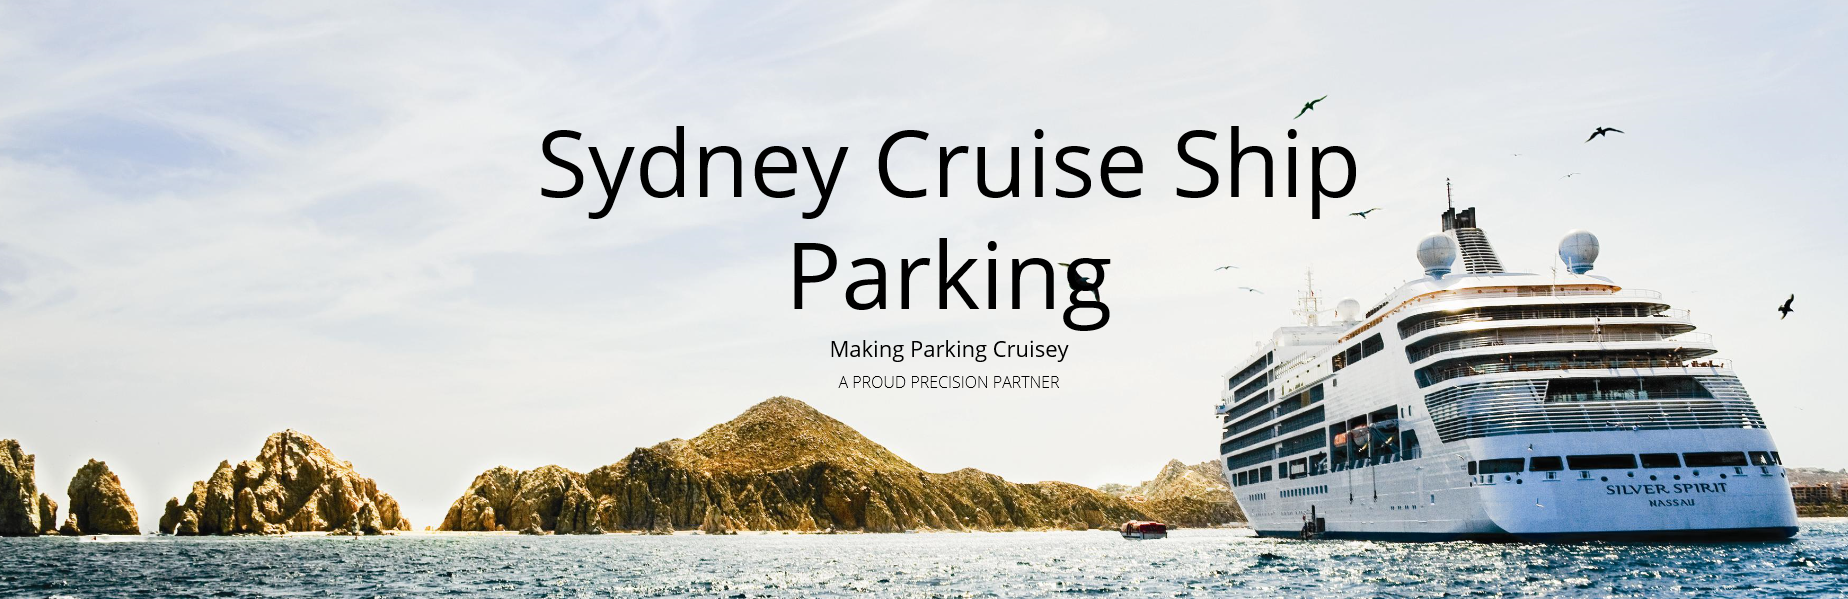 Sydney cruise ship parking